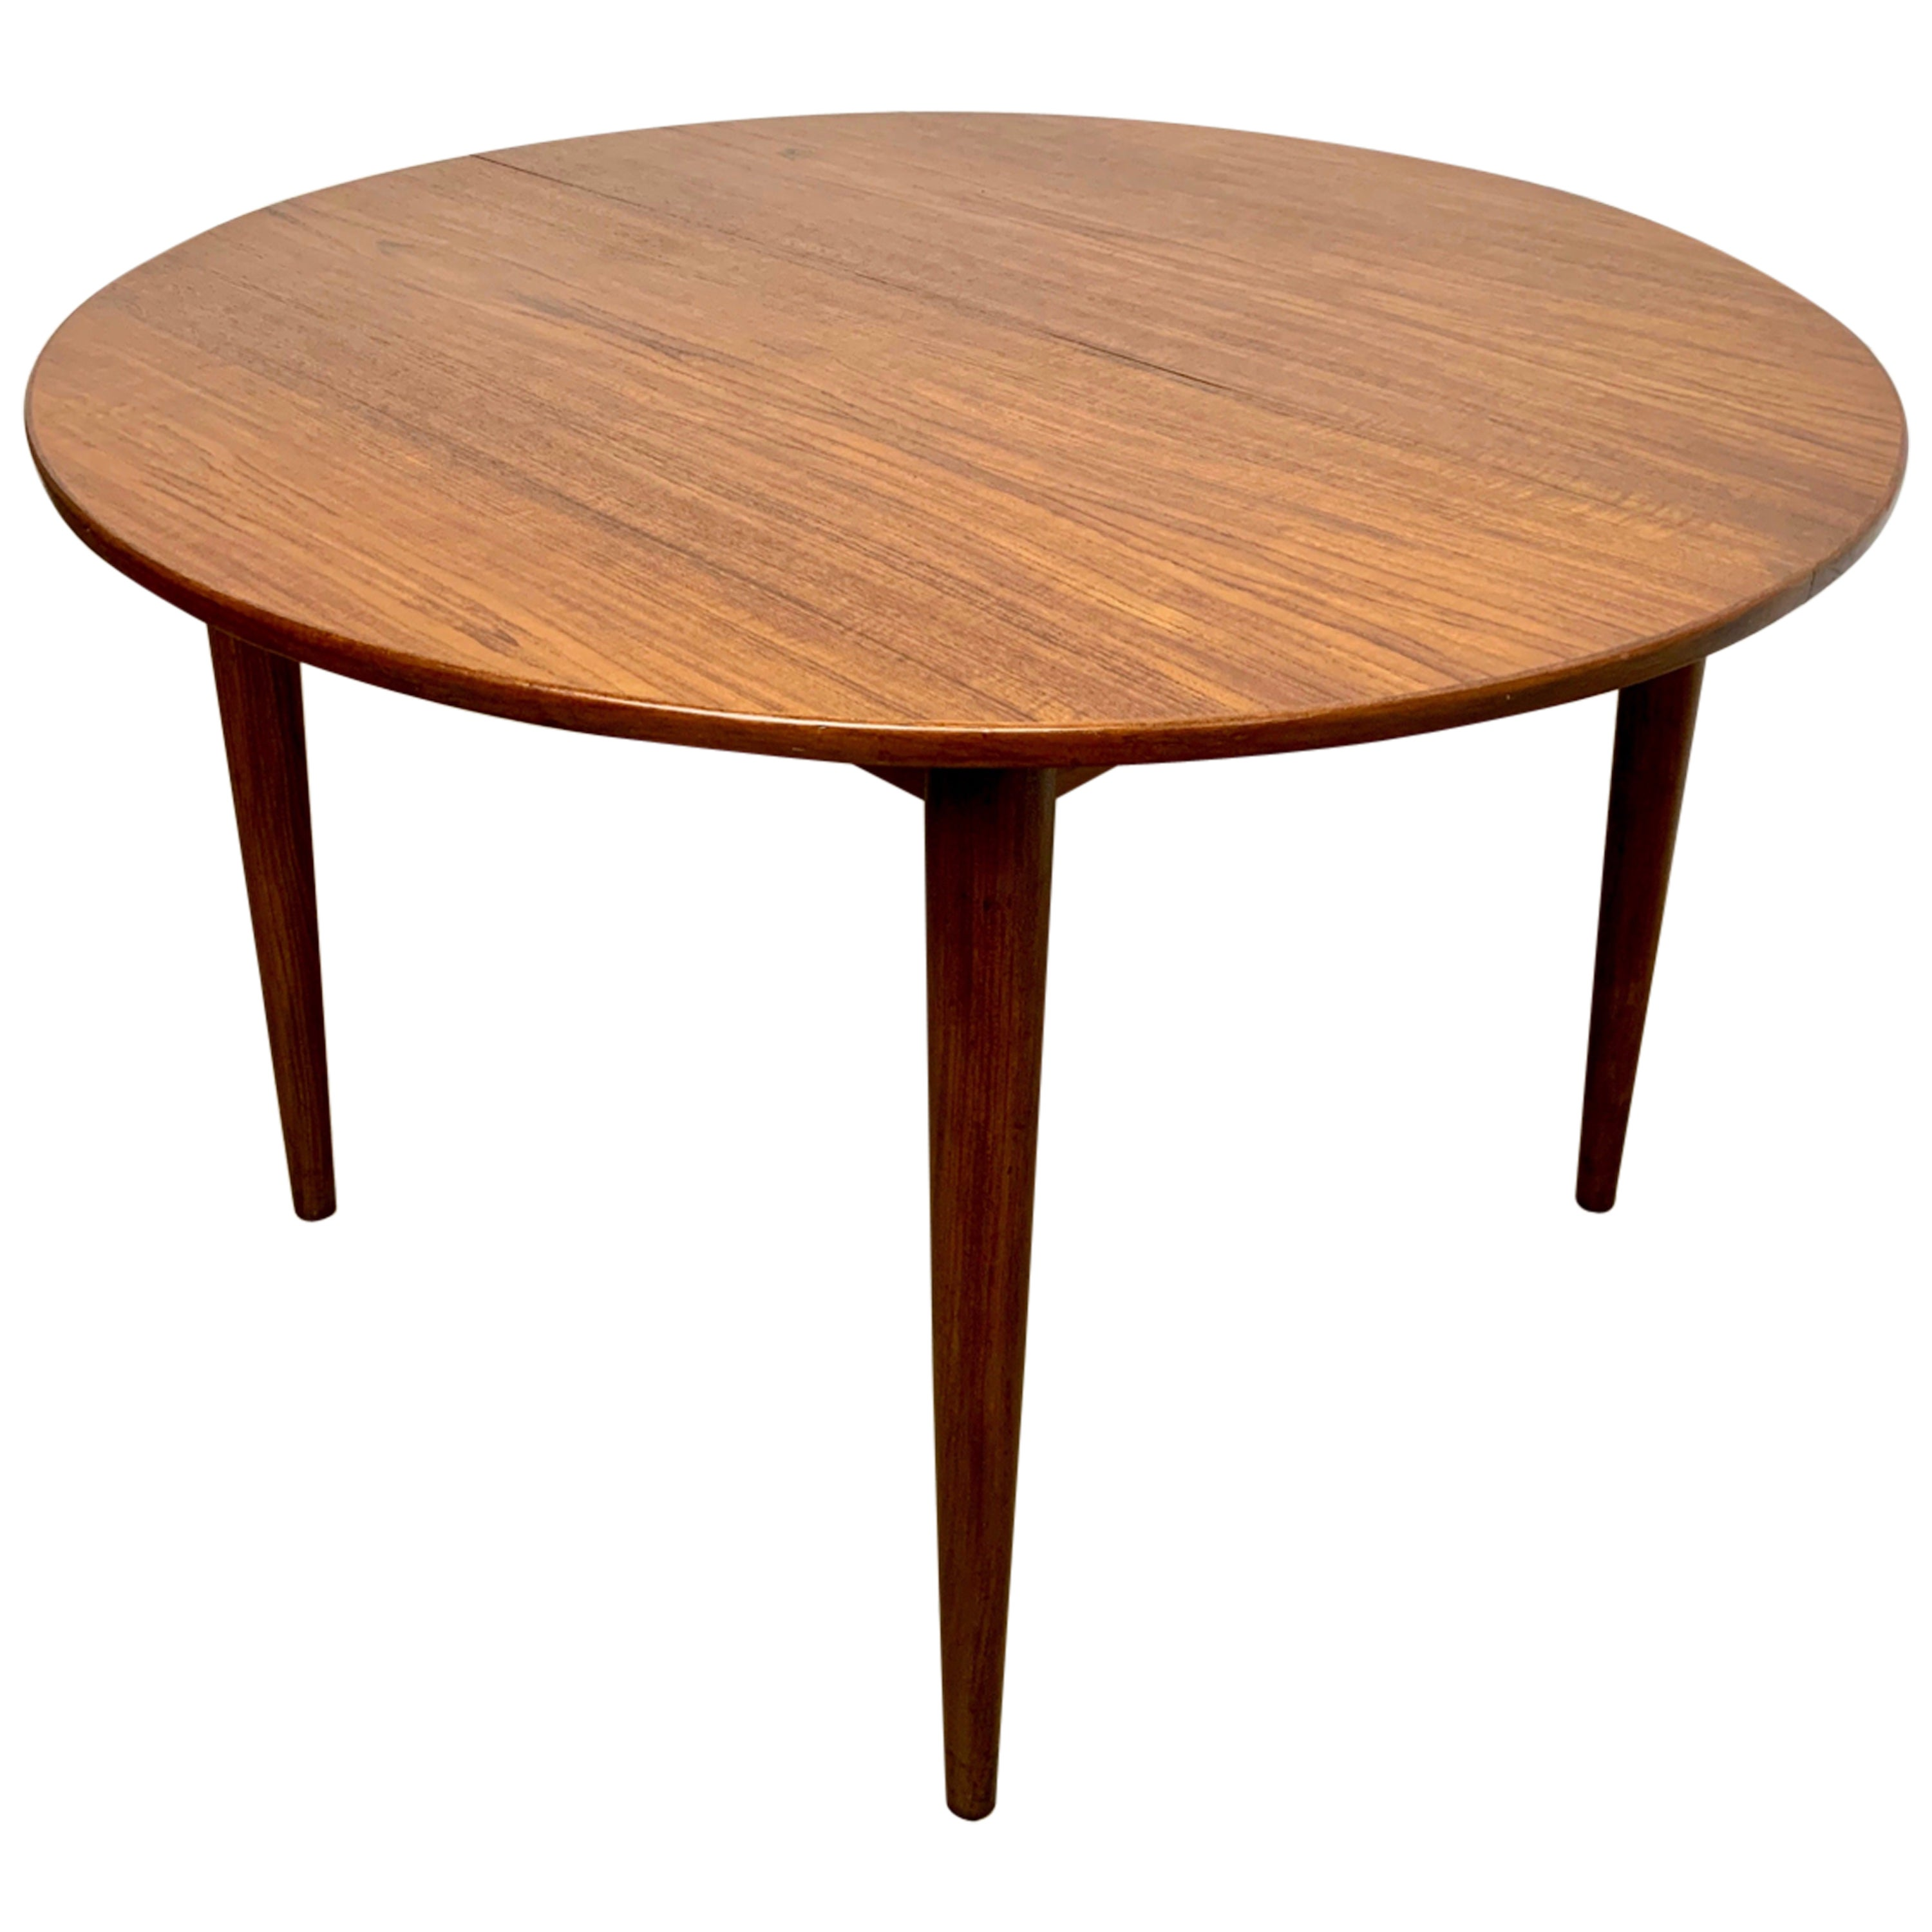 Danish Modern Teak Dining Table by Gudme Mobelfabrik